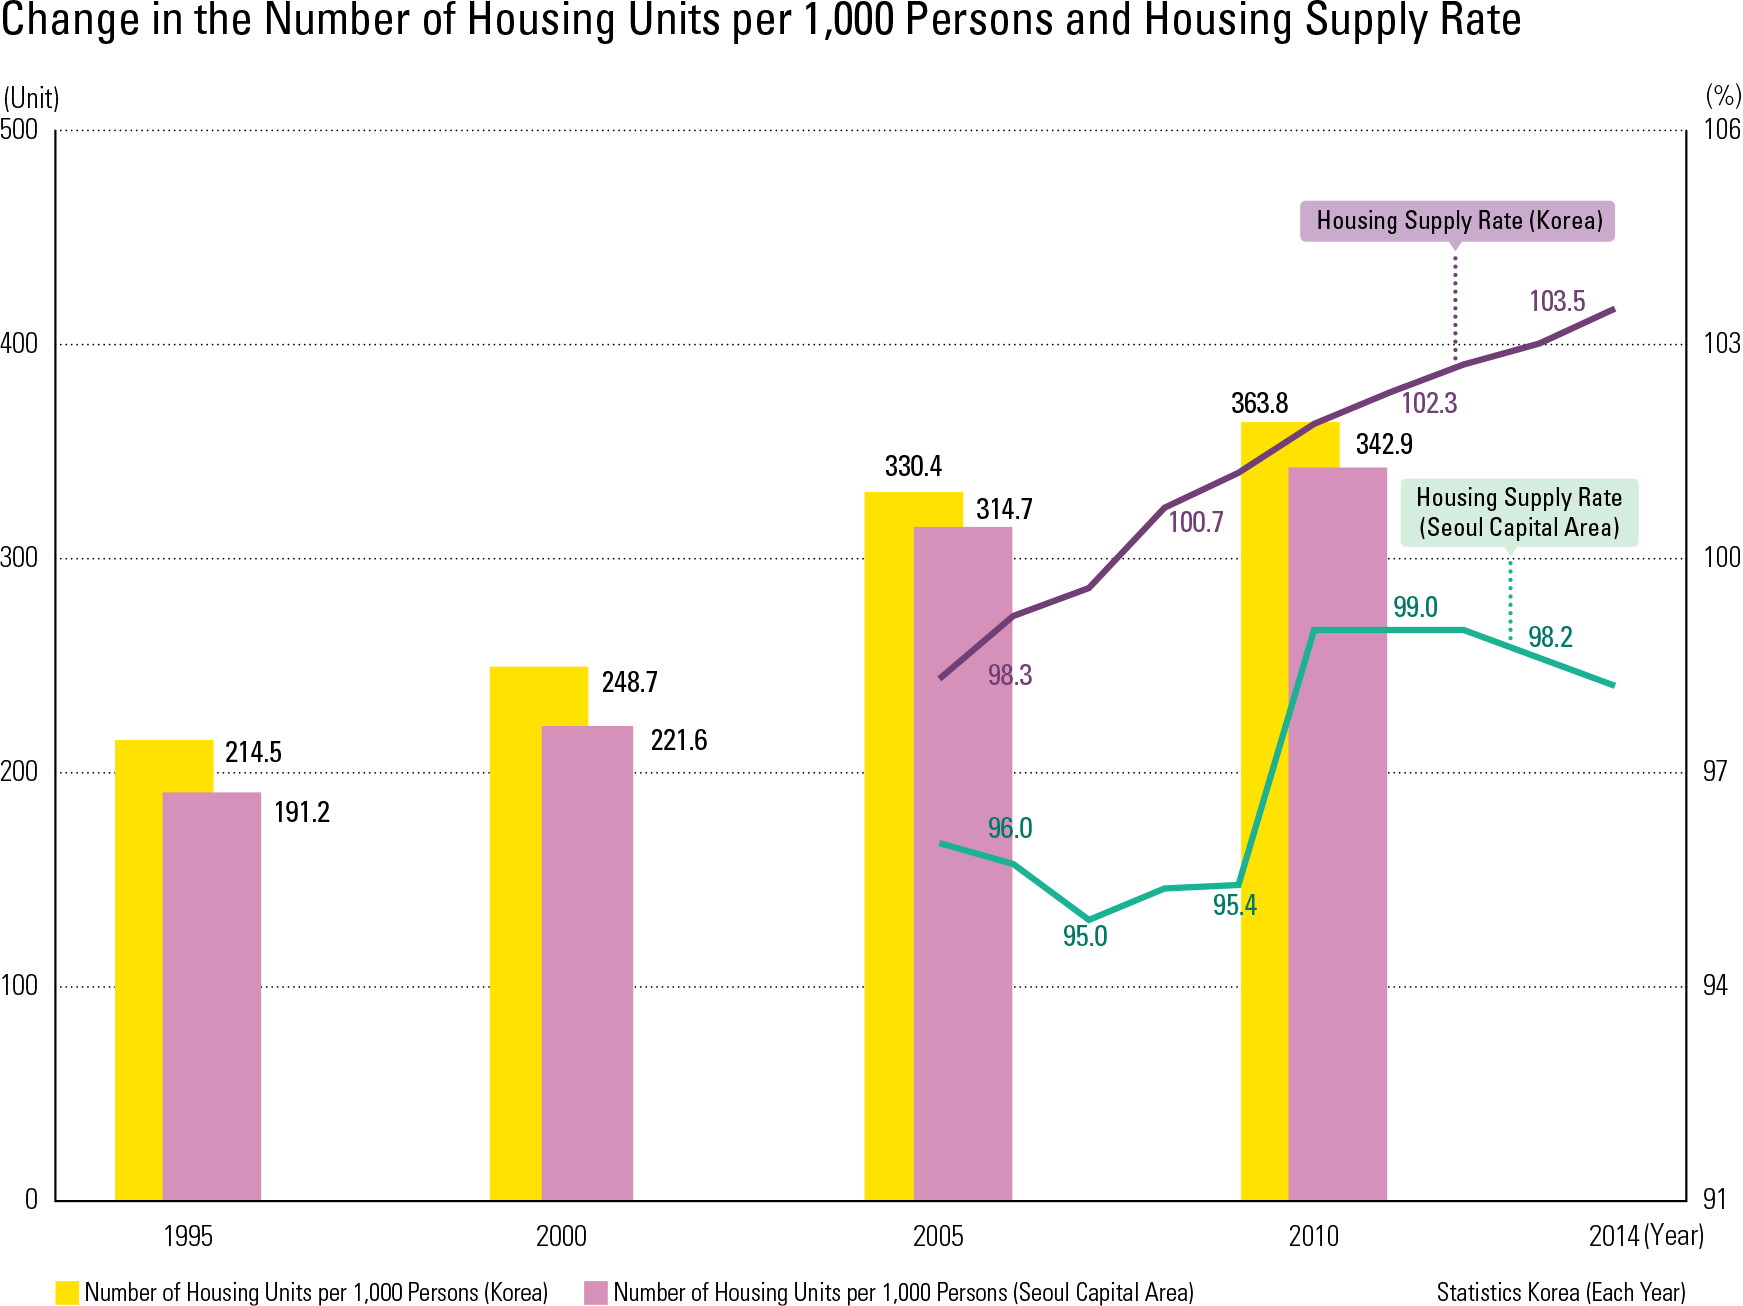 """Change in the Number of Housing Units per 1,000 Persons and Housing Supply Rate<p class=""""oz_zoom"""" zimg=""""http://imagedata.cafe24.com/us_3/us3_64-1_2.jpg""""><span style=""""font-family:Nanum Myeongjo;""""><span style=""""font-size:18px;""""><span class=""""label label-danger"""">UPDATE DATA</span></span></p>"""